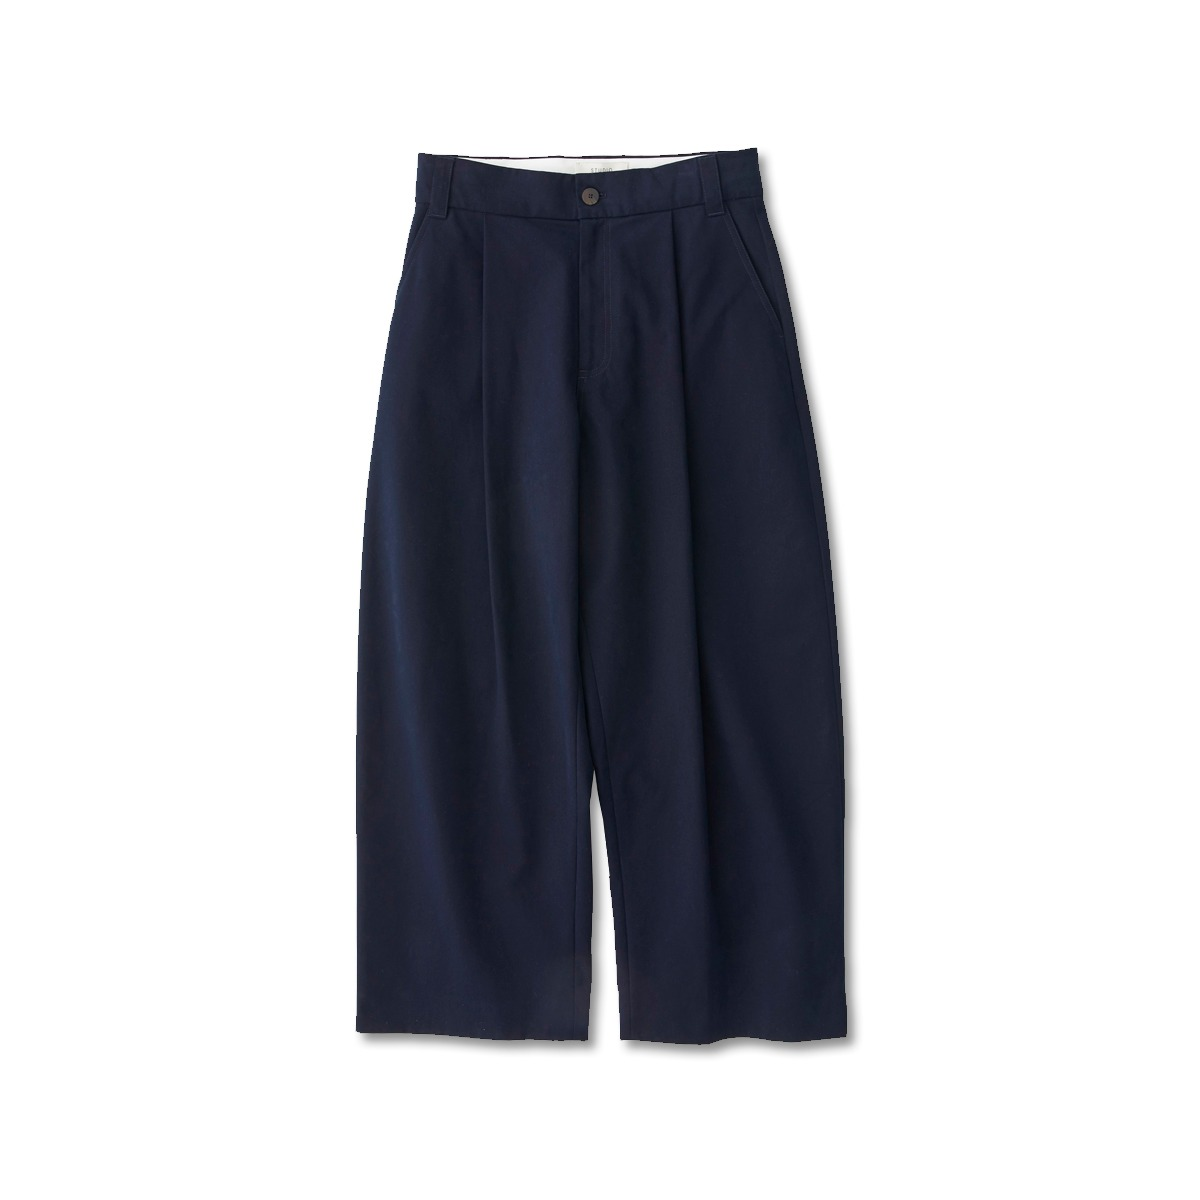 [STUDIO NICHOLSON] VOLUME PLEAT PANTS 'DARK NAVY'